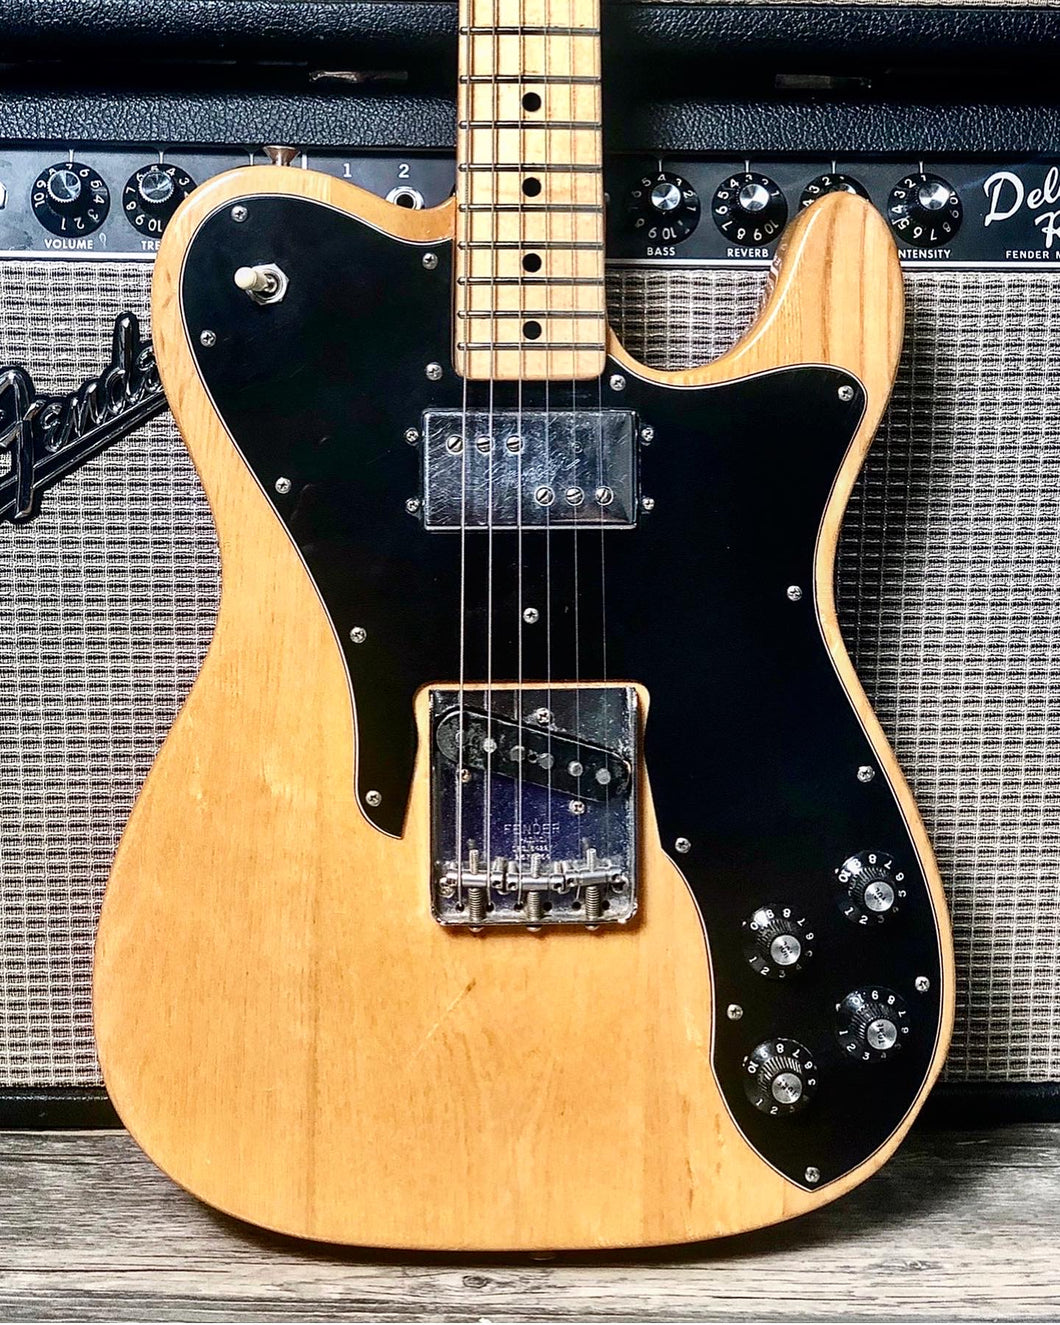 Fender Telecaster Custom 1973 Owned by Ray LaMontagne